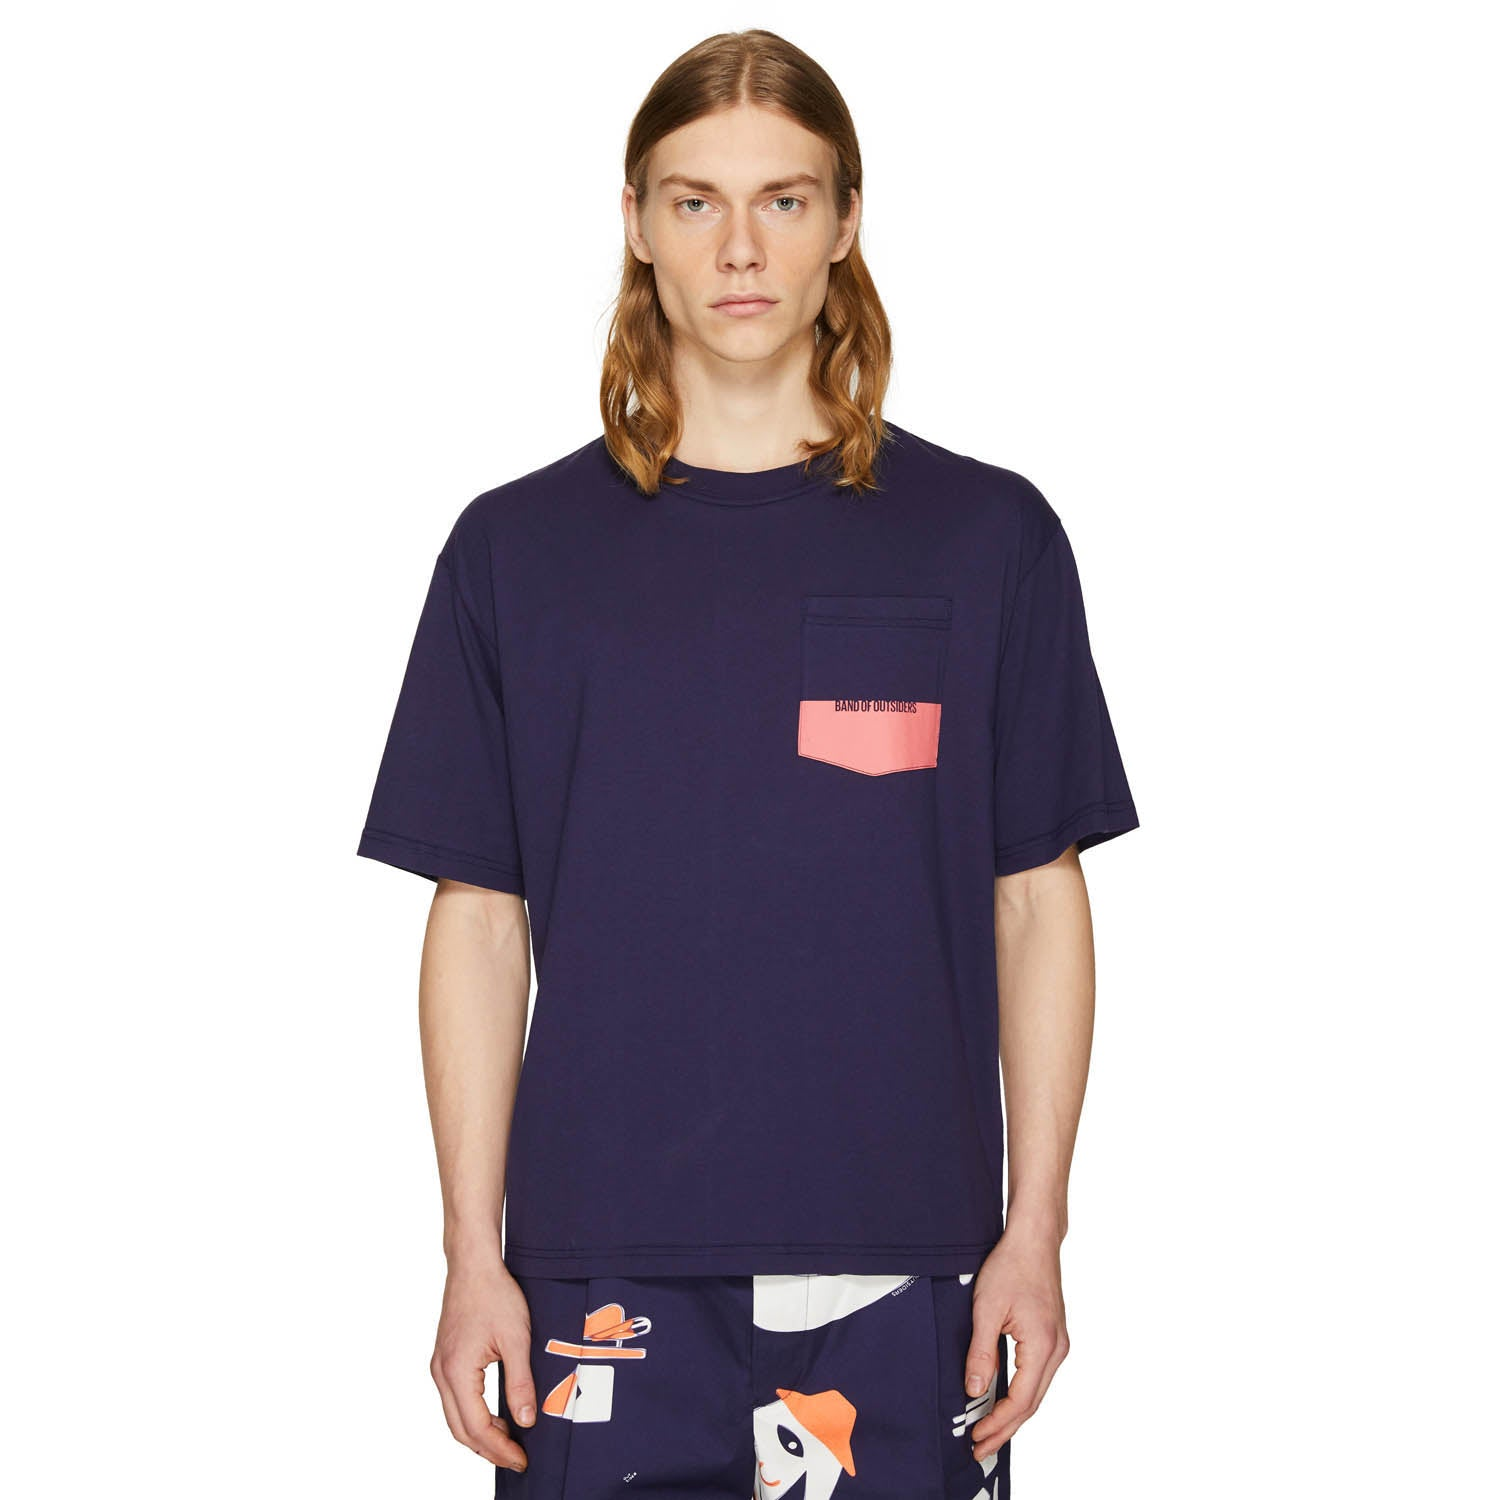 PRINTED OVERSIZED T-SHIRT NAVY